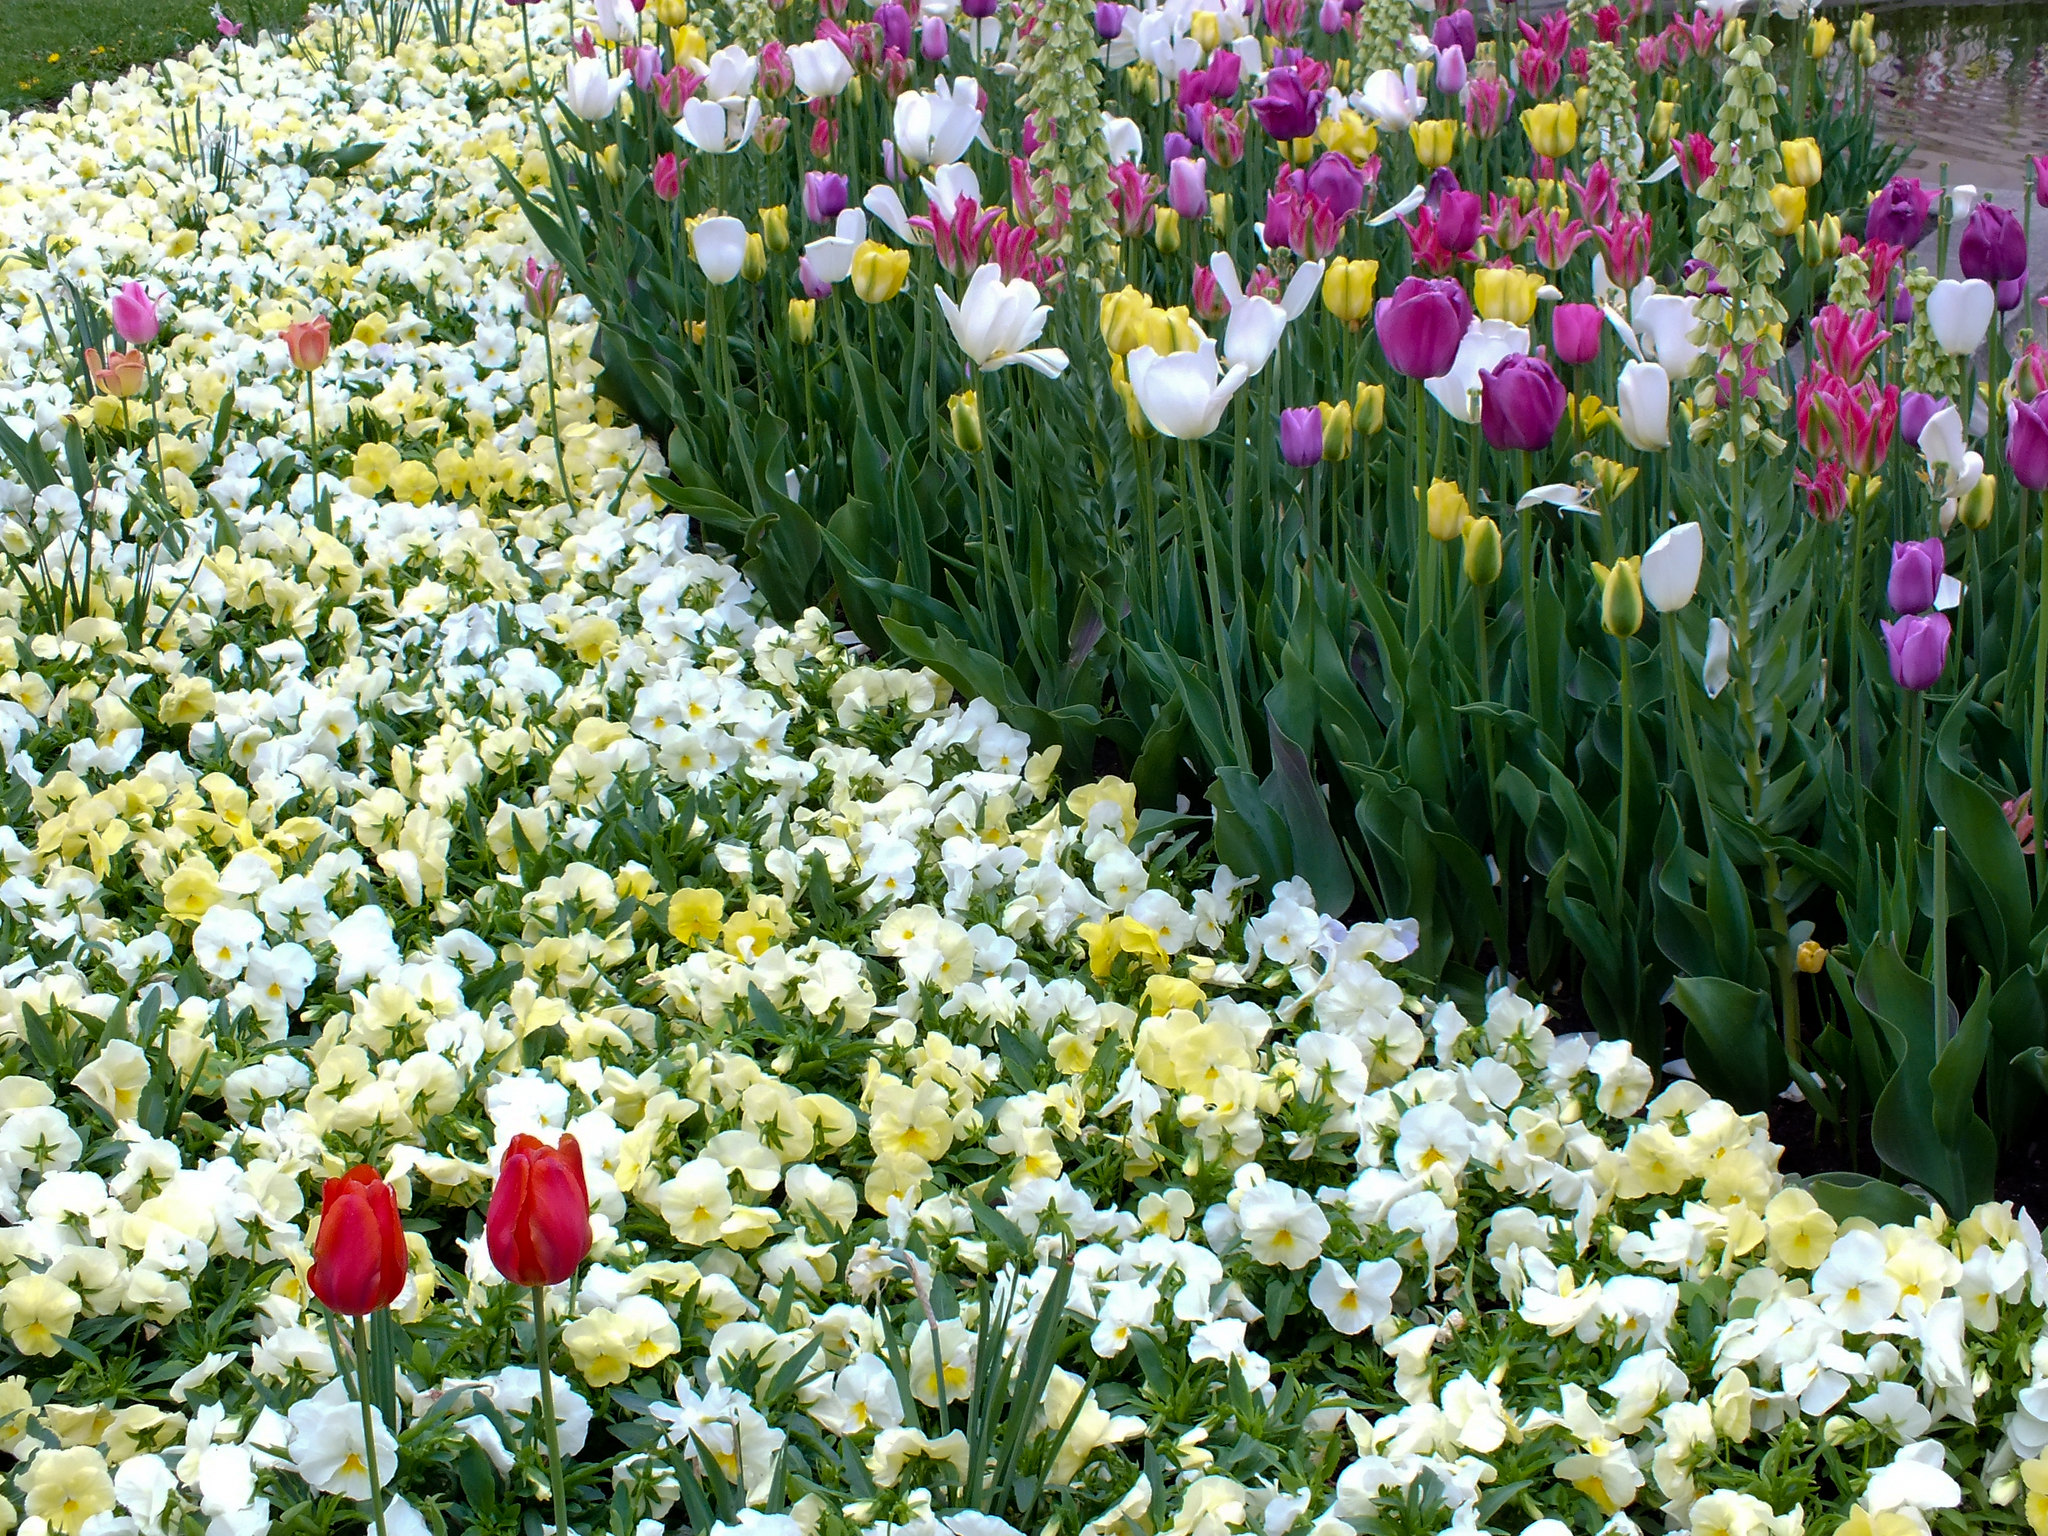 A sea of white and yellow flowers in Lund park in Sweden.